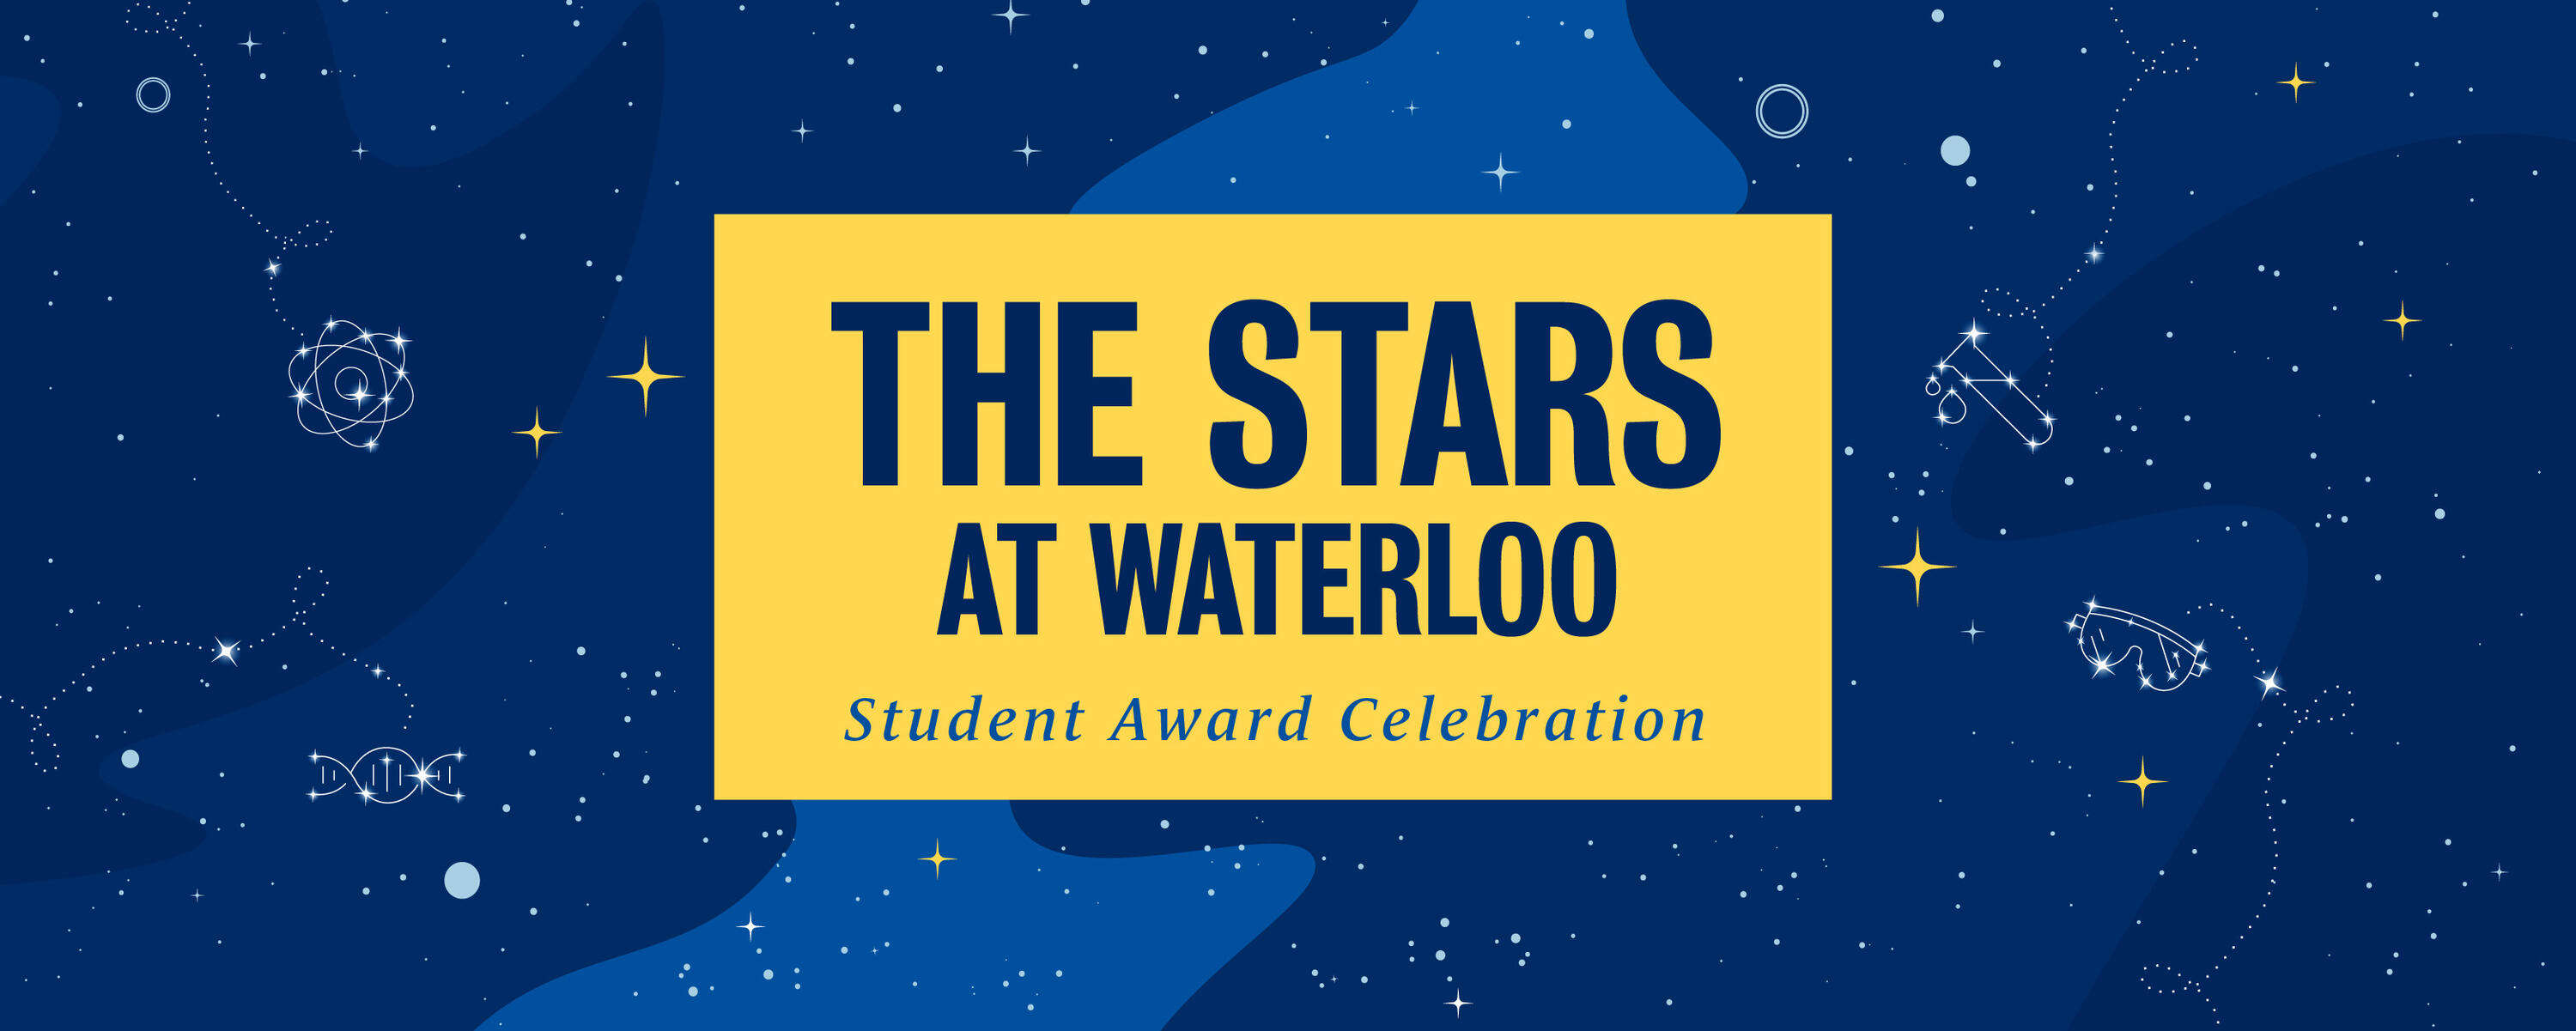 The Stars at Waterloo event banner